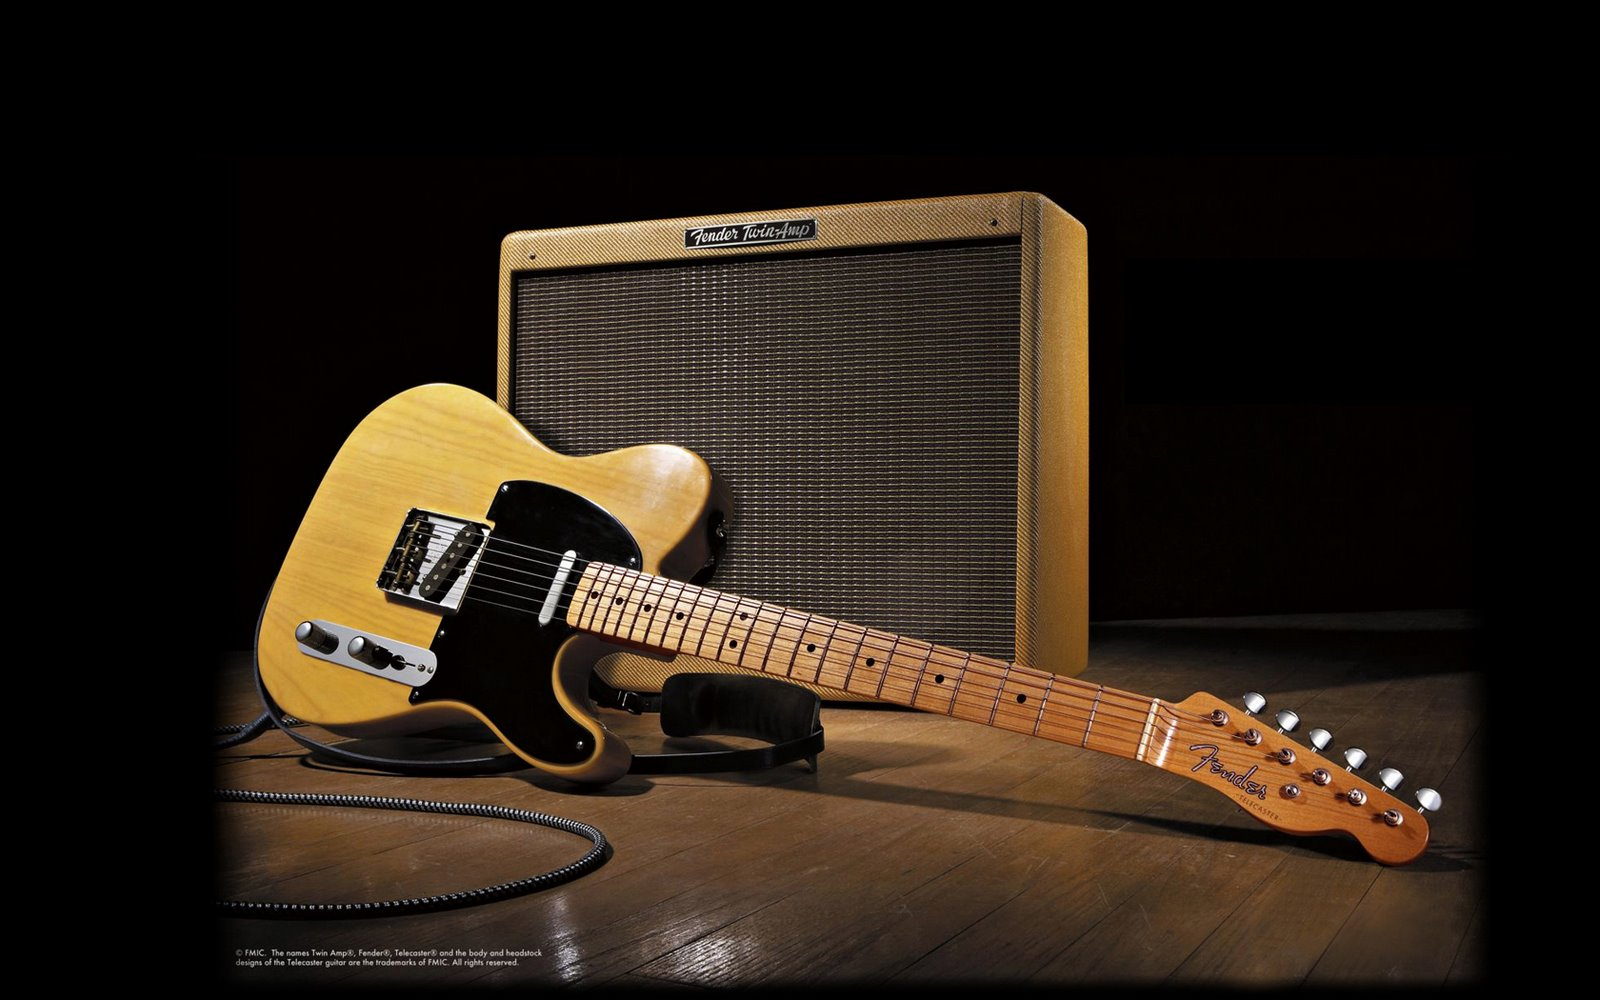 Top 23 Super And Fabulous Guitar Wallpapers In HD - For More Wallpapers Just Click On Image